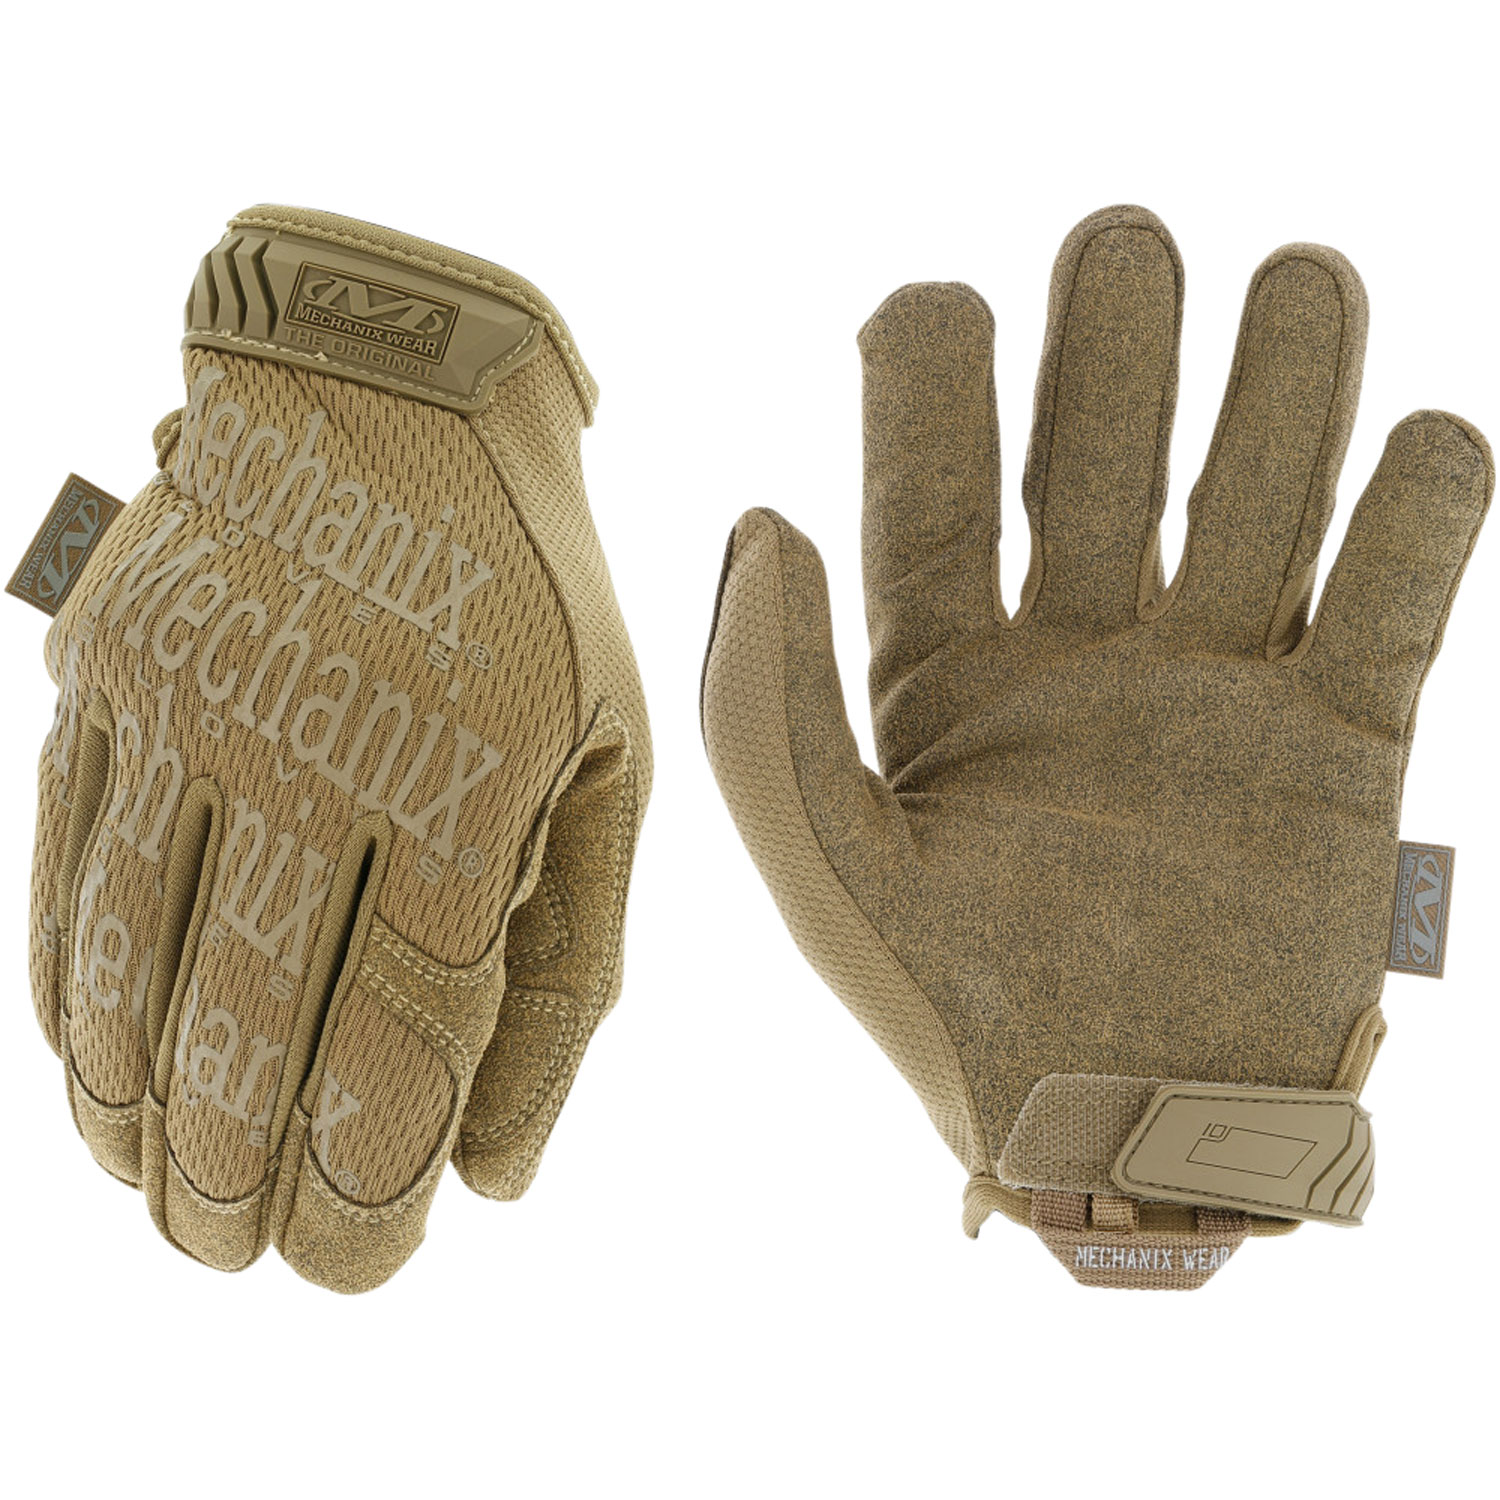 MECHANIX WEAR MG-72-011 Original  XL Coyote Synthetic Leather